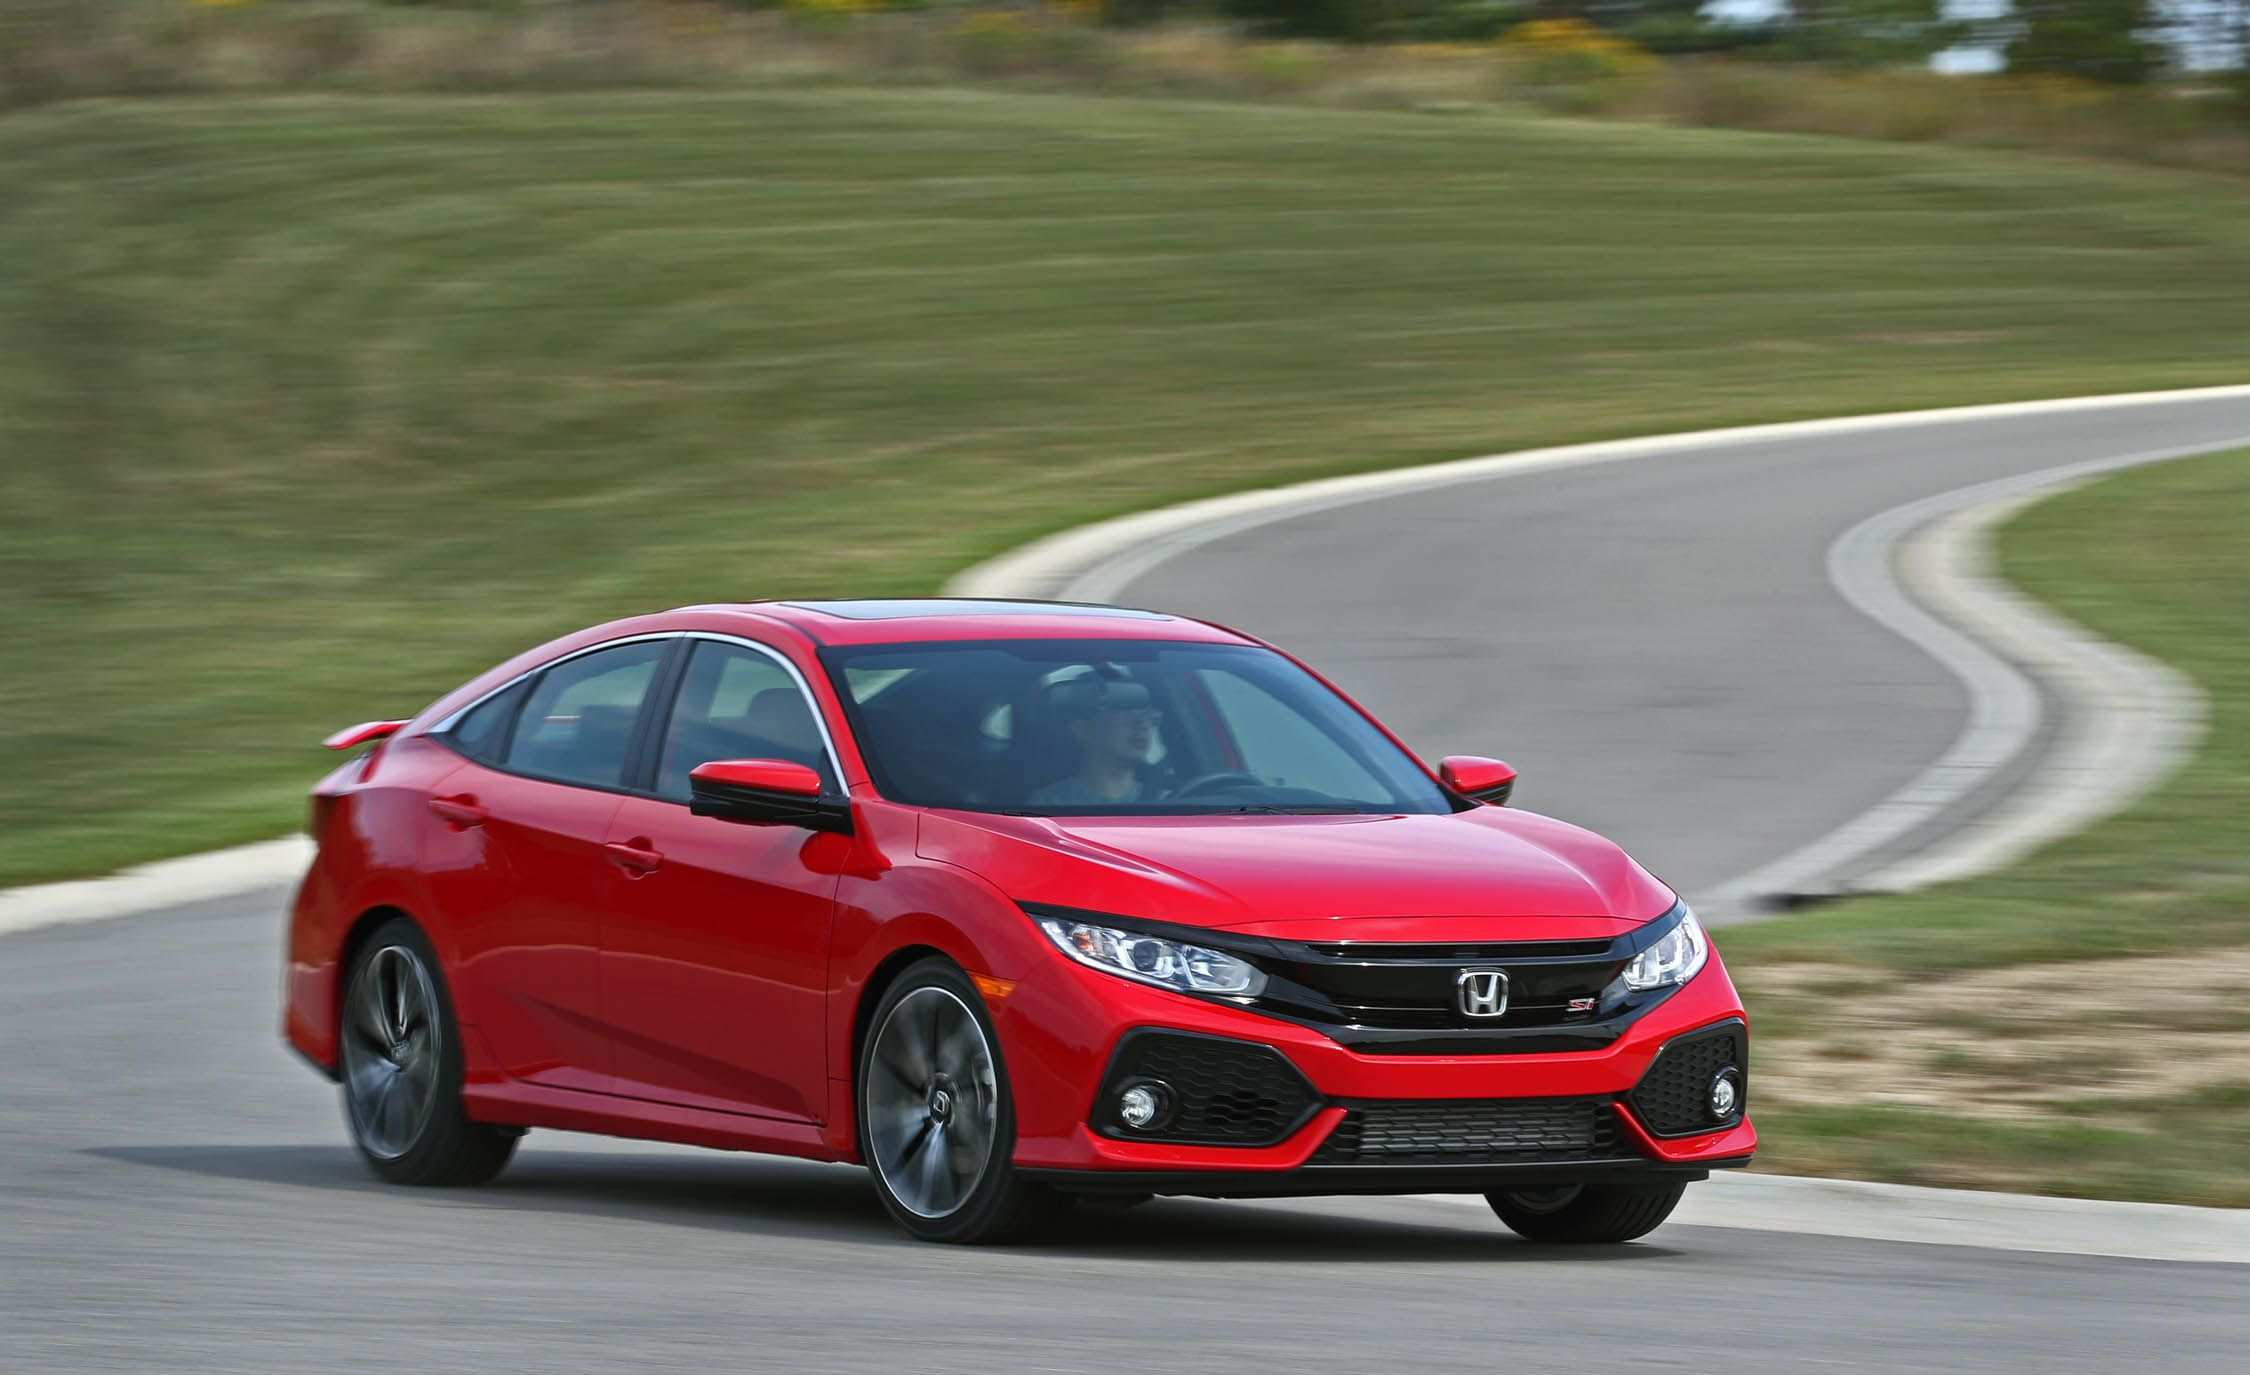 93 New 2020 Honda Civic Si Price Design And Review